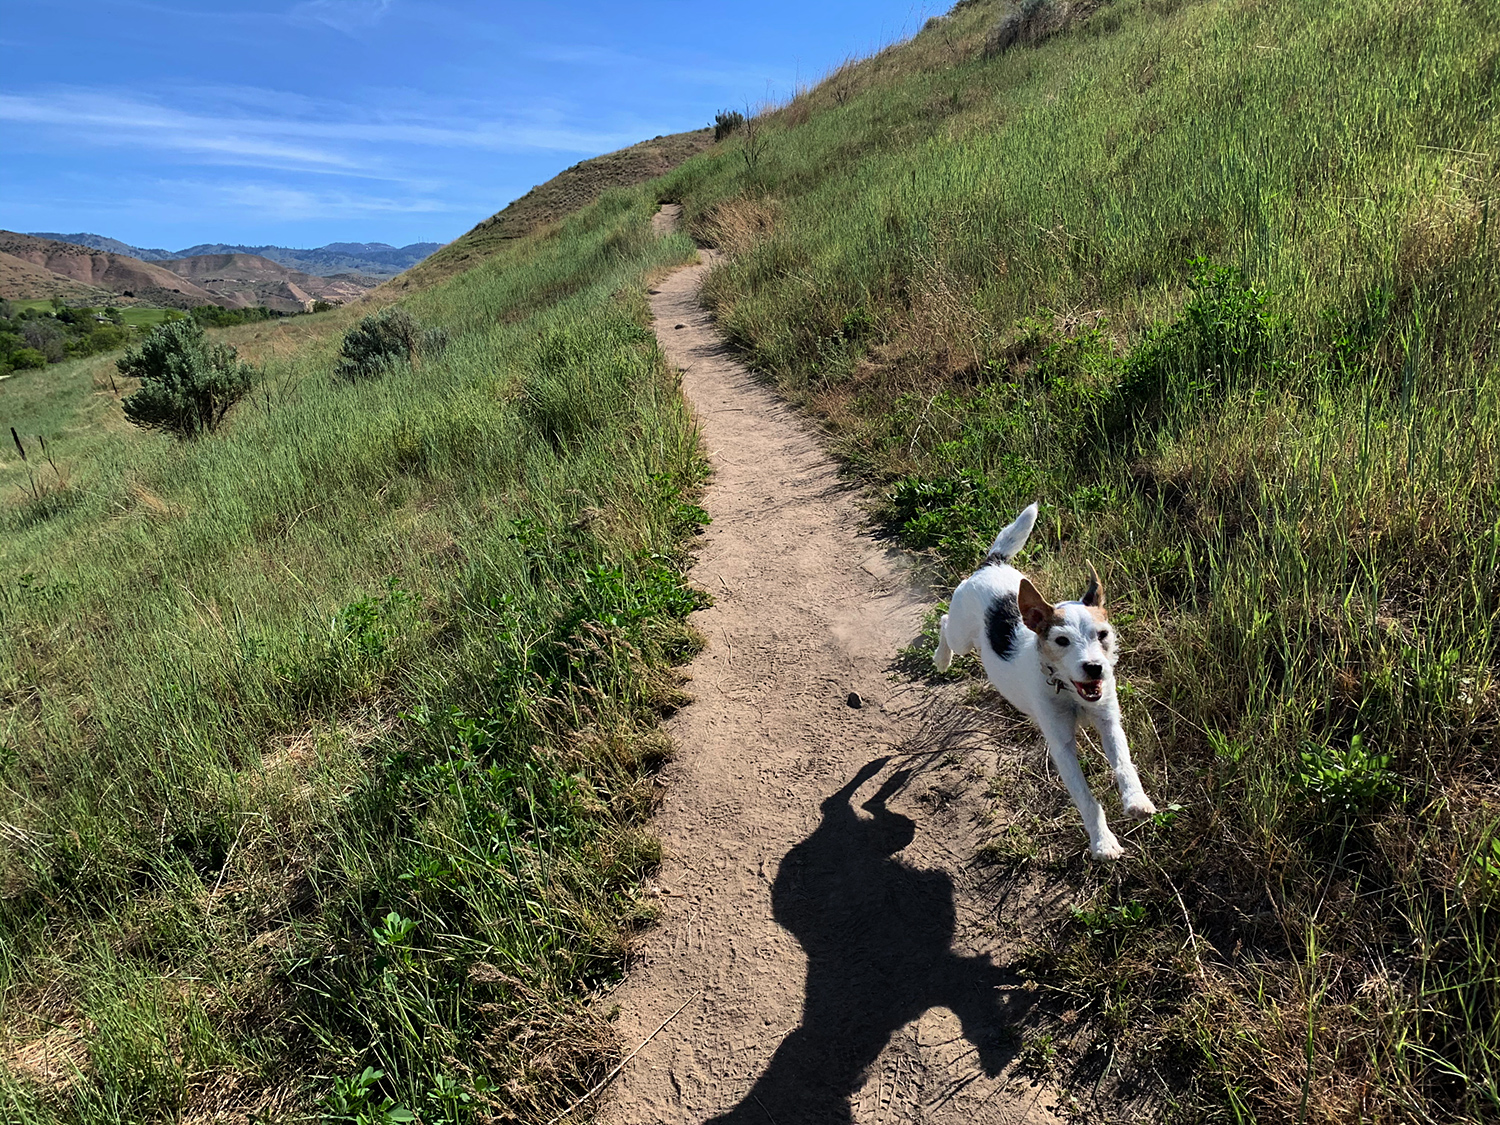 A Jack Russell Terrier enjoys the Full Sail Trail in the Boise Foothills.